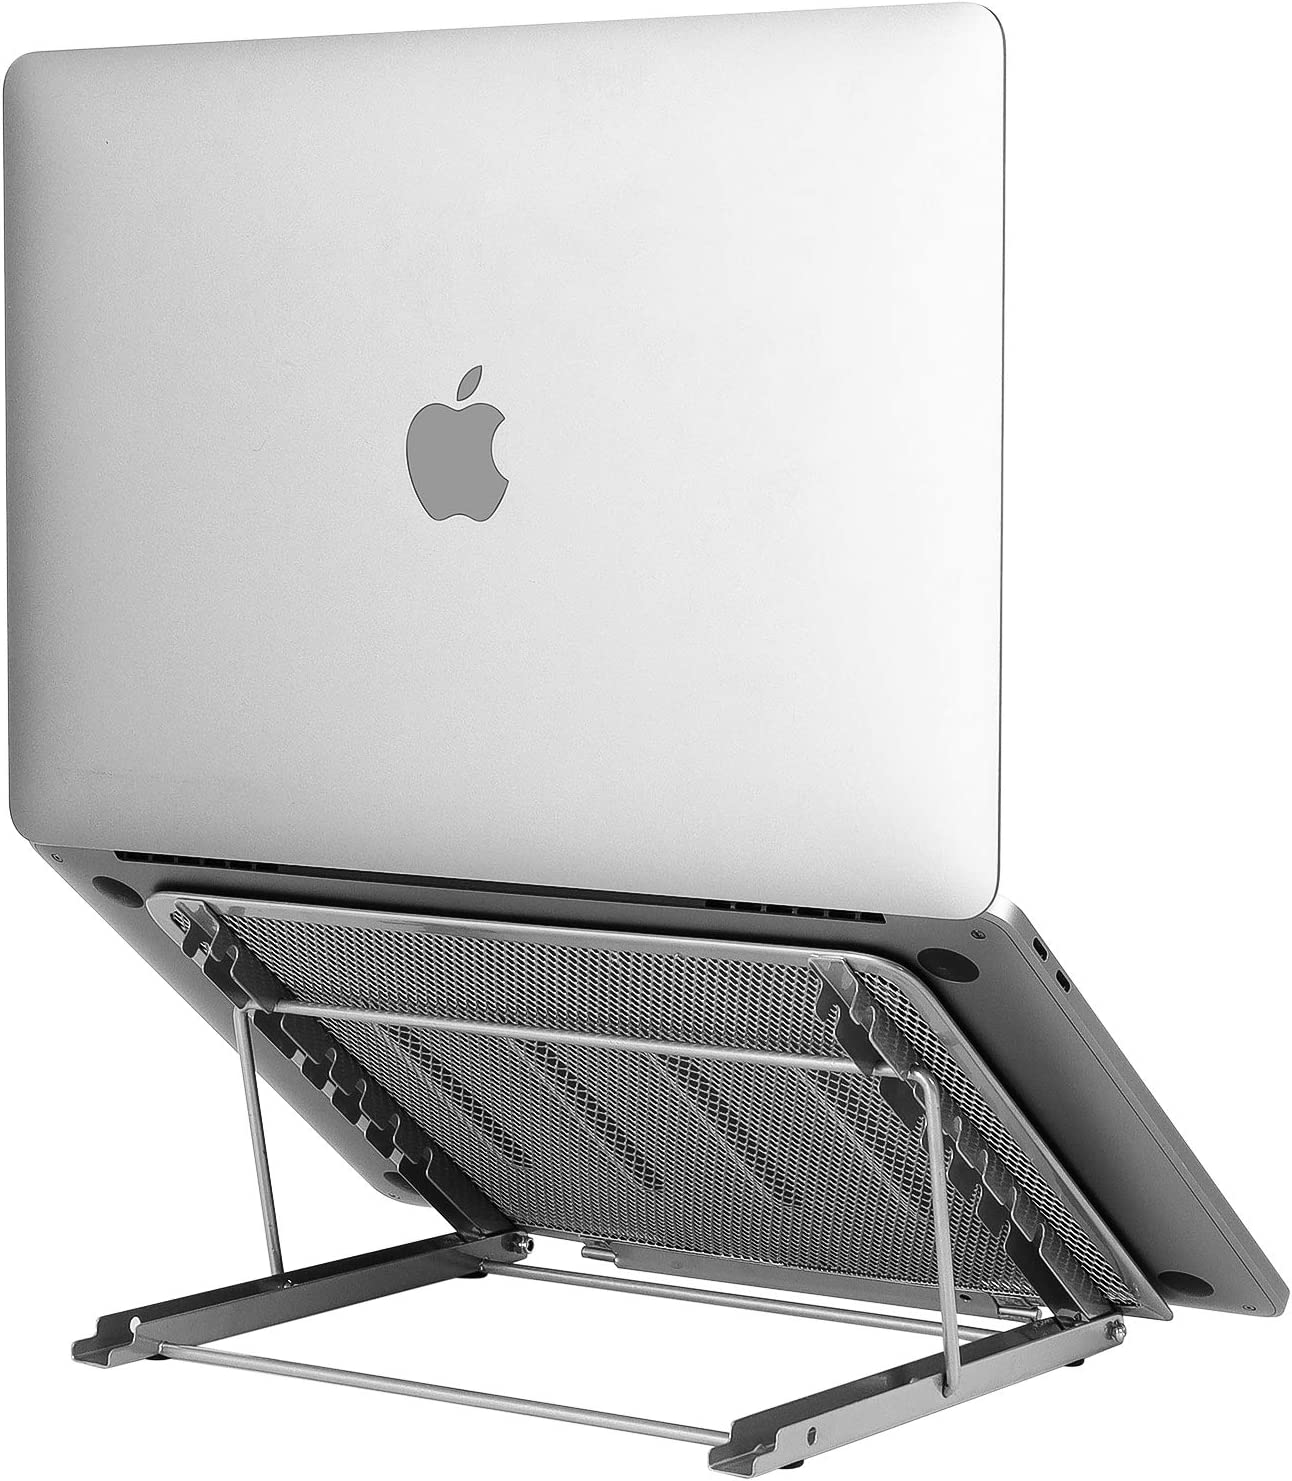 Laptop Stand Upgraded, Adjustable Portable Laptop Holder for Desk, Aluminum Ventilated Notebook Riser for MacBook Air Pro, More 10-15.6 inches PC Computer, Tablet, iPad (Silver)